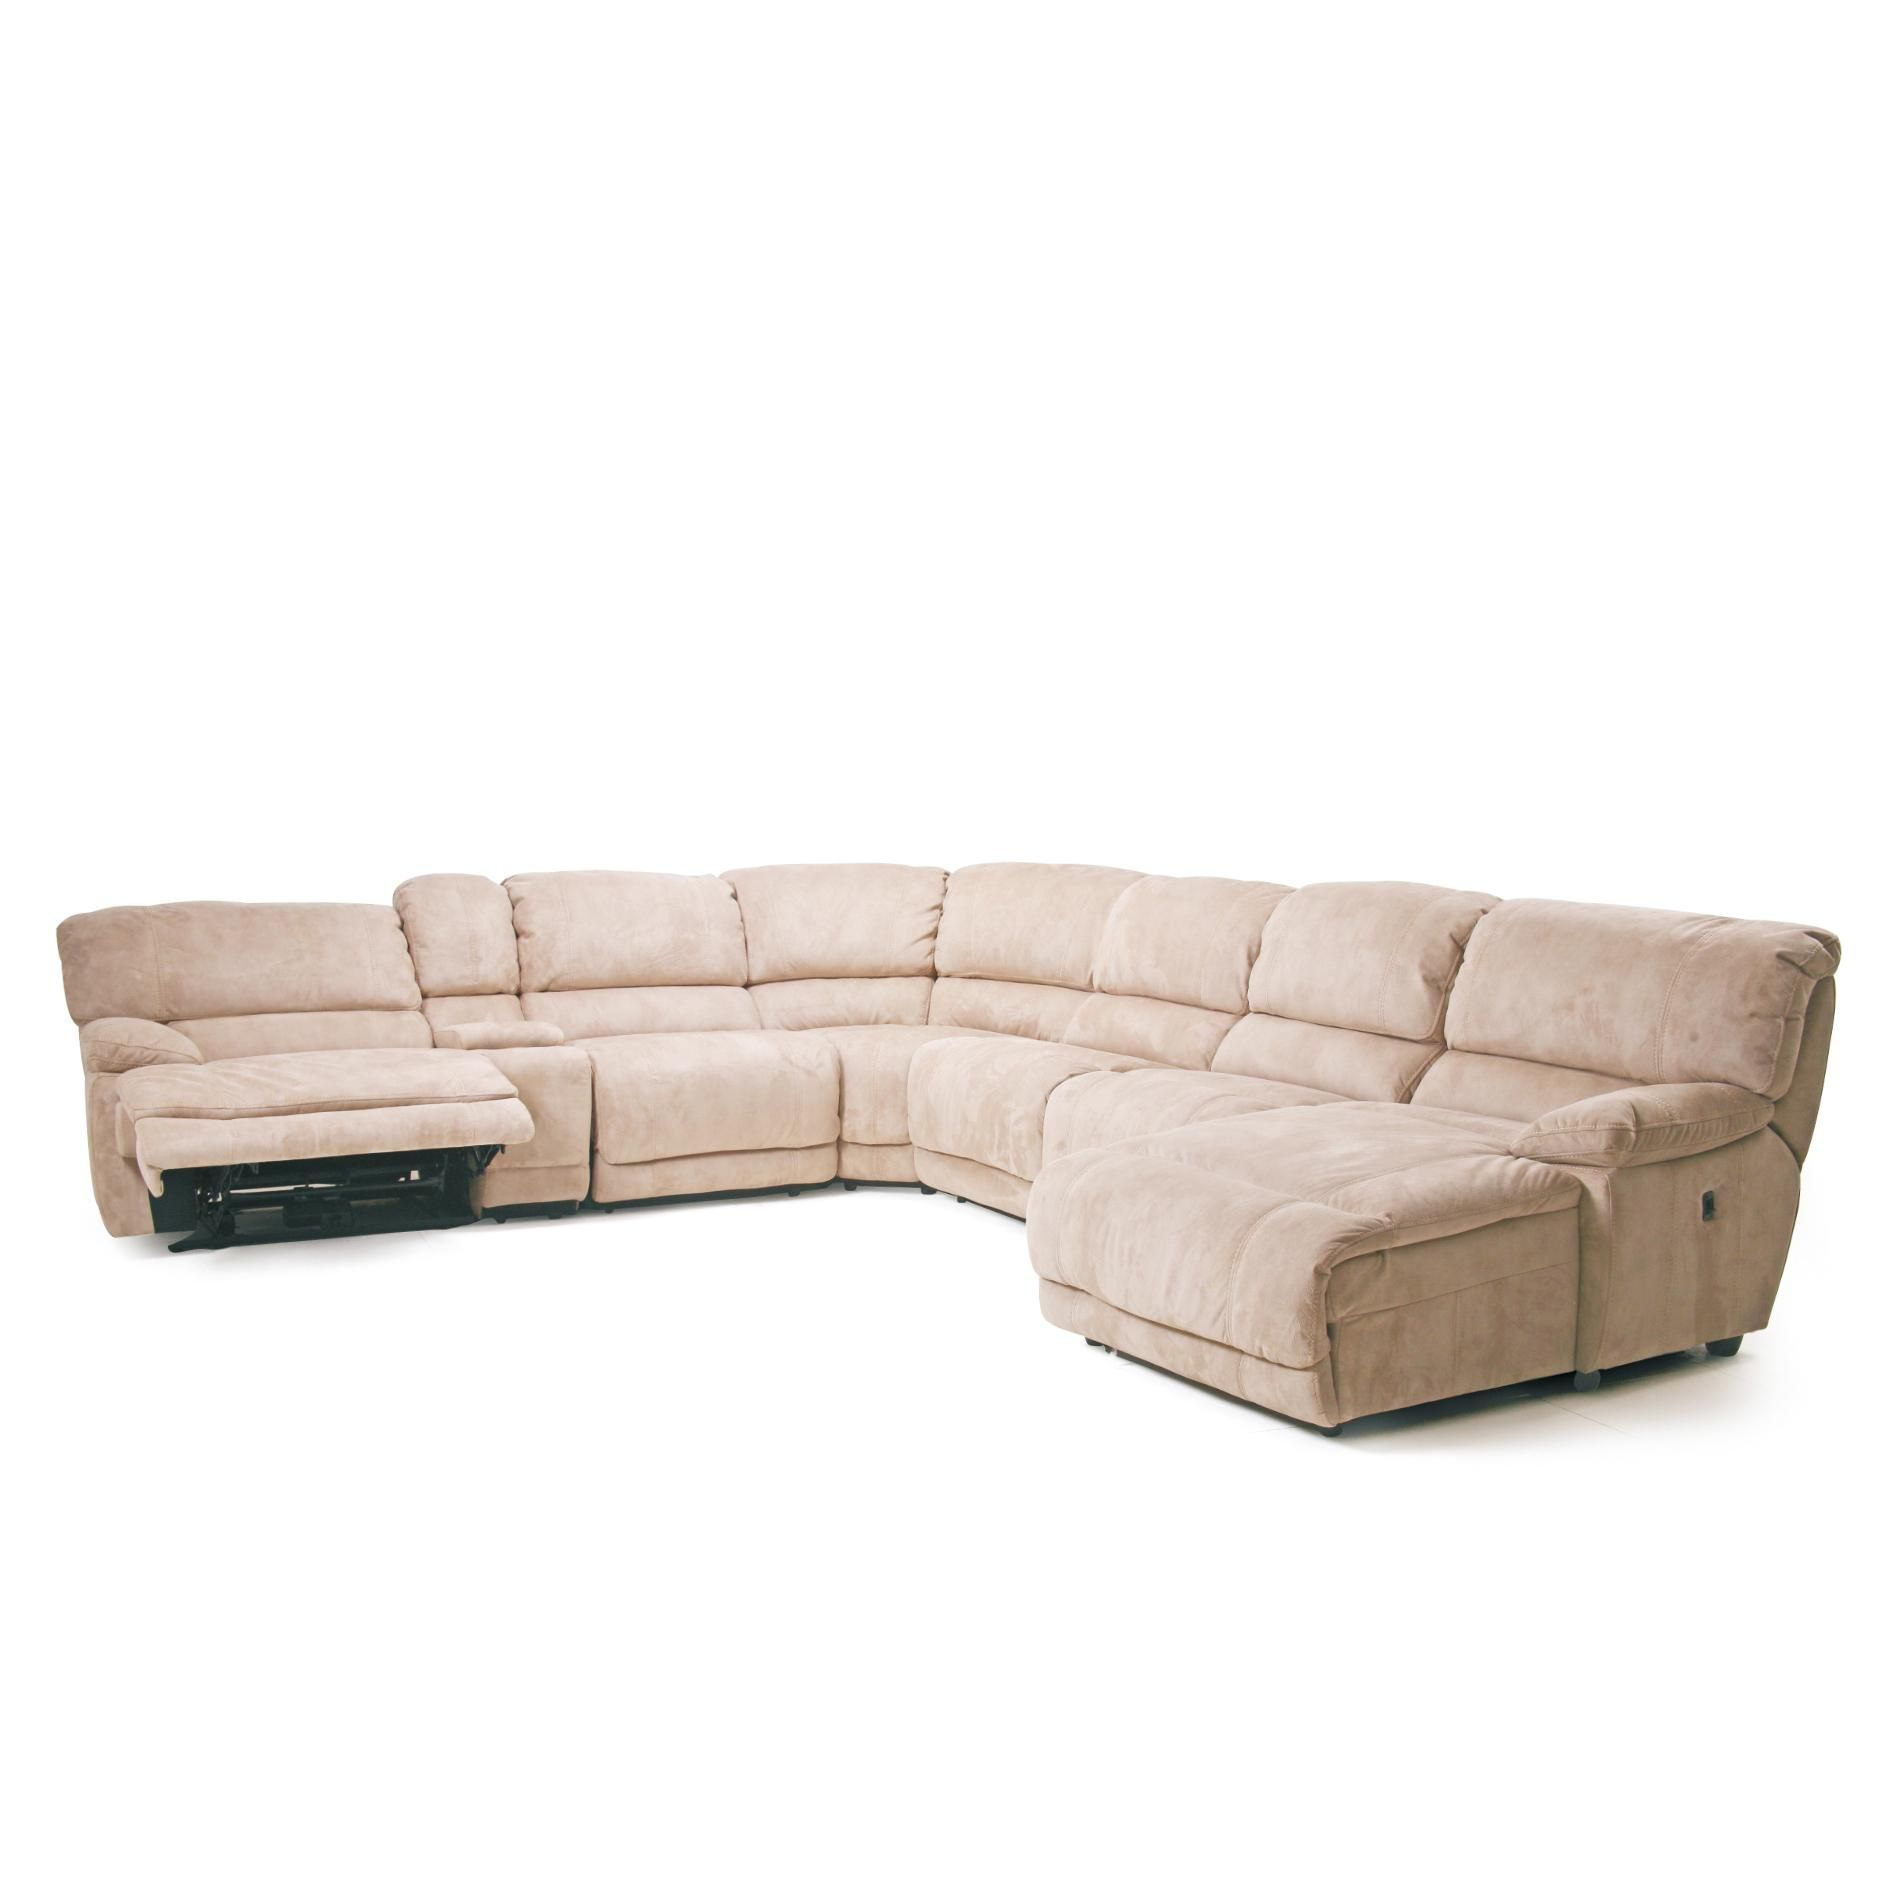 8698 ing Soon Late July by Cheers Sofa Great American Home